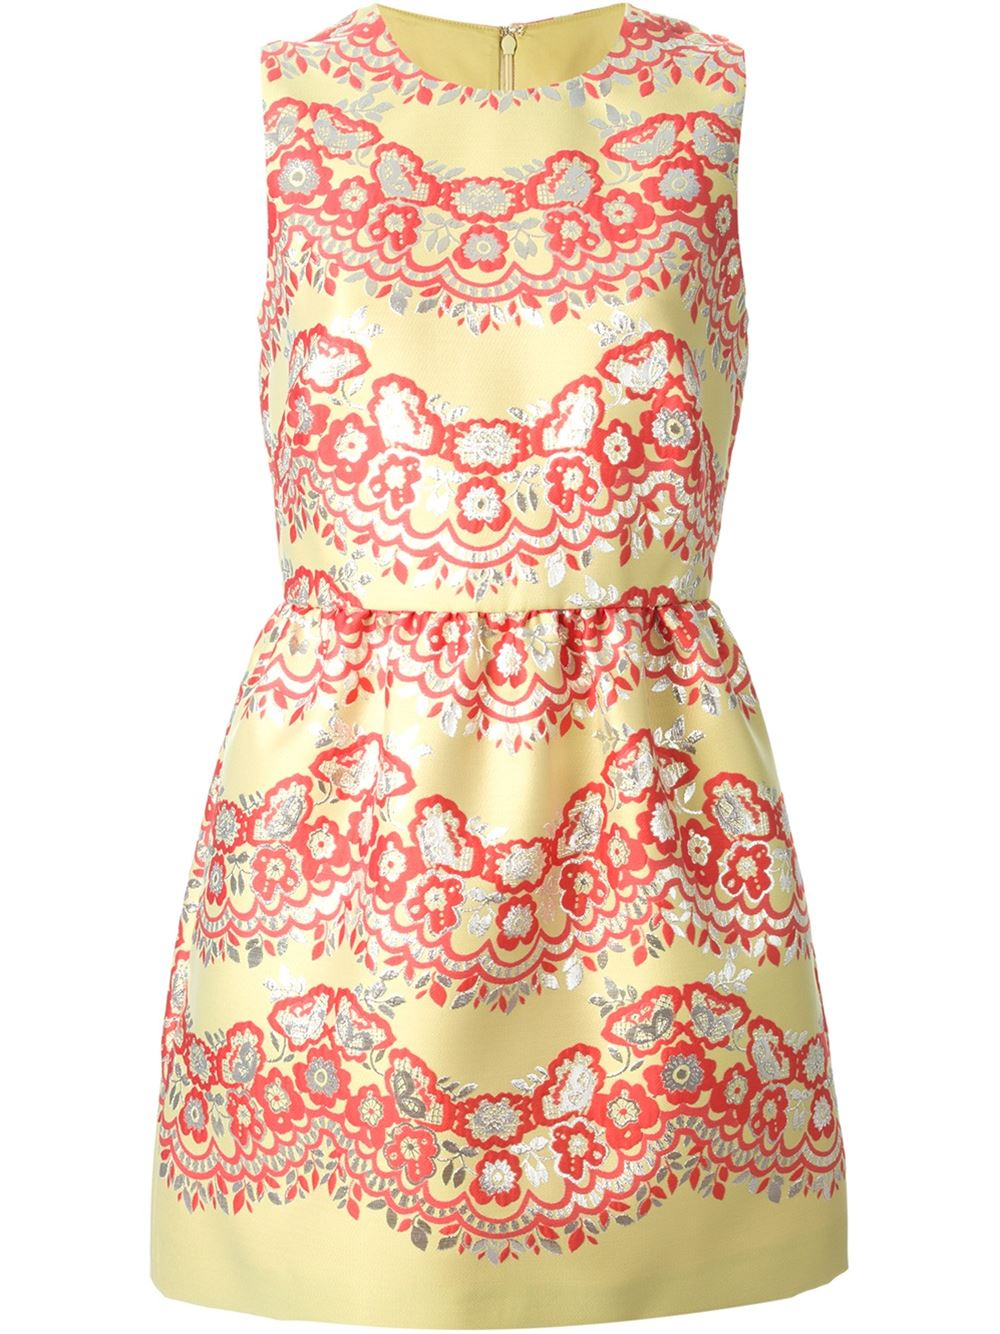 Red and yellow floral dress